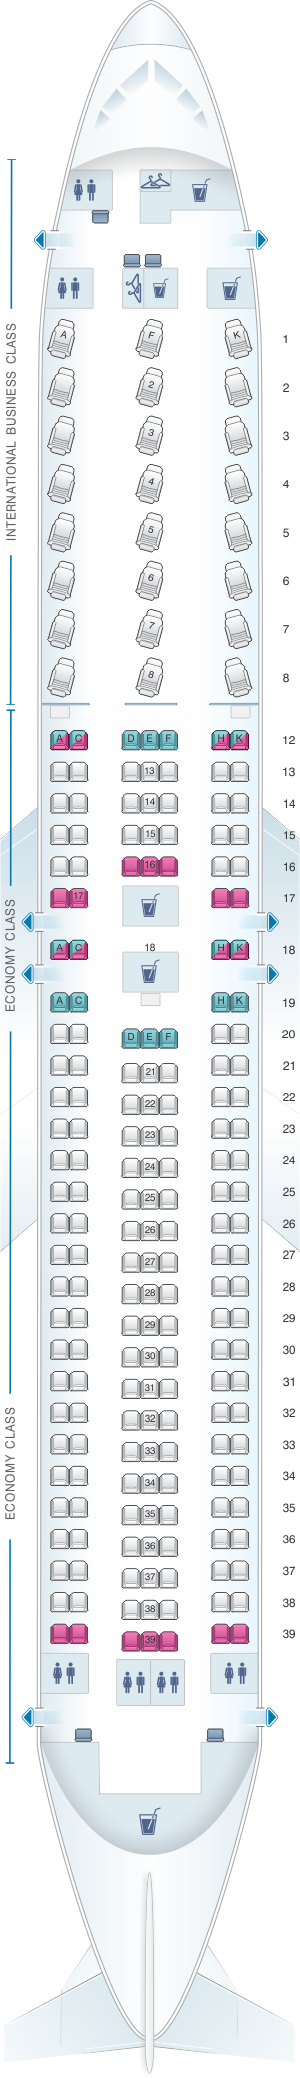 Seat map for Air Canada Boeing B767 300ER (763)